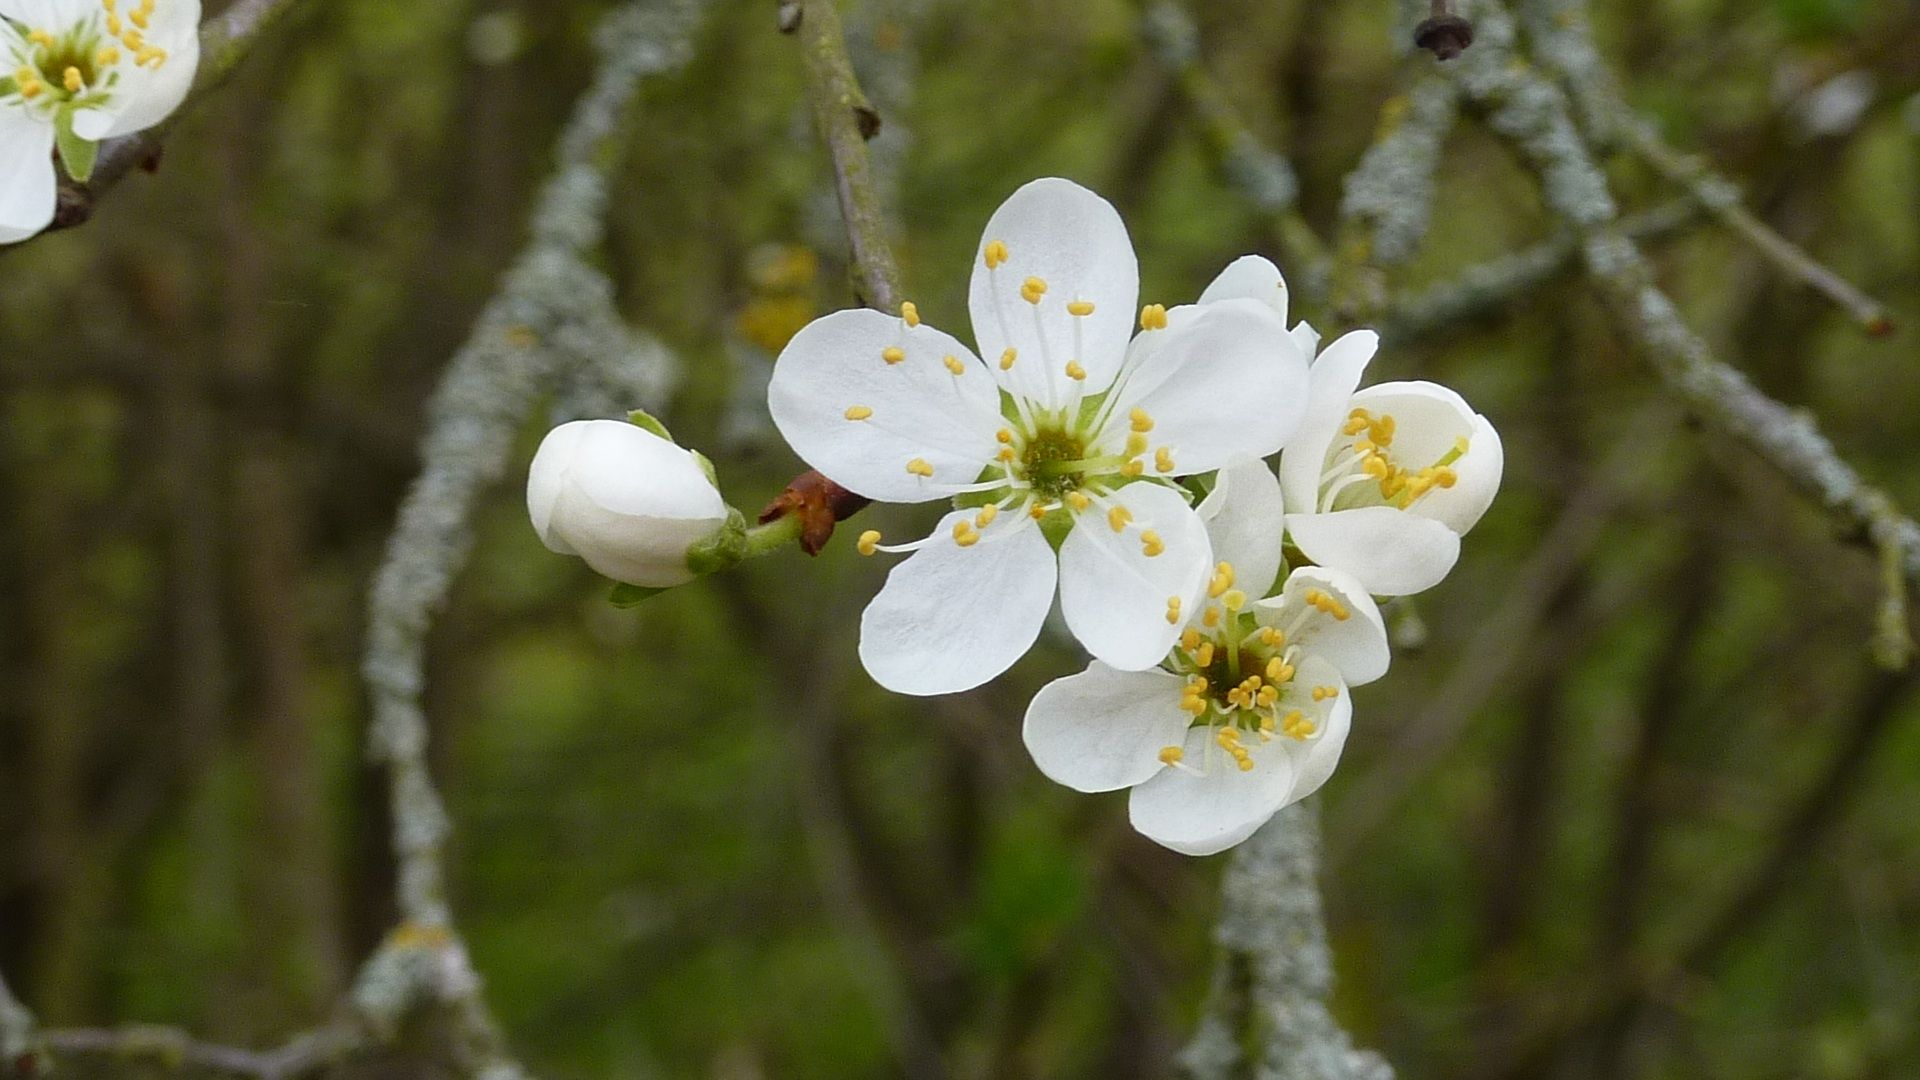 A Shropshire Prune Damson Flower Pure White With 5 Petals